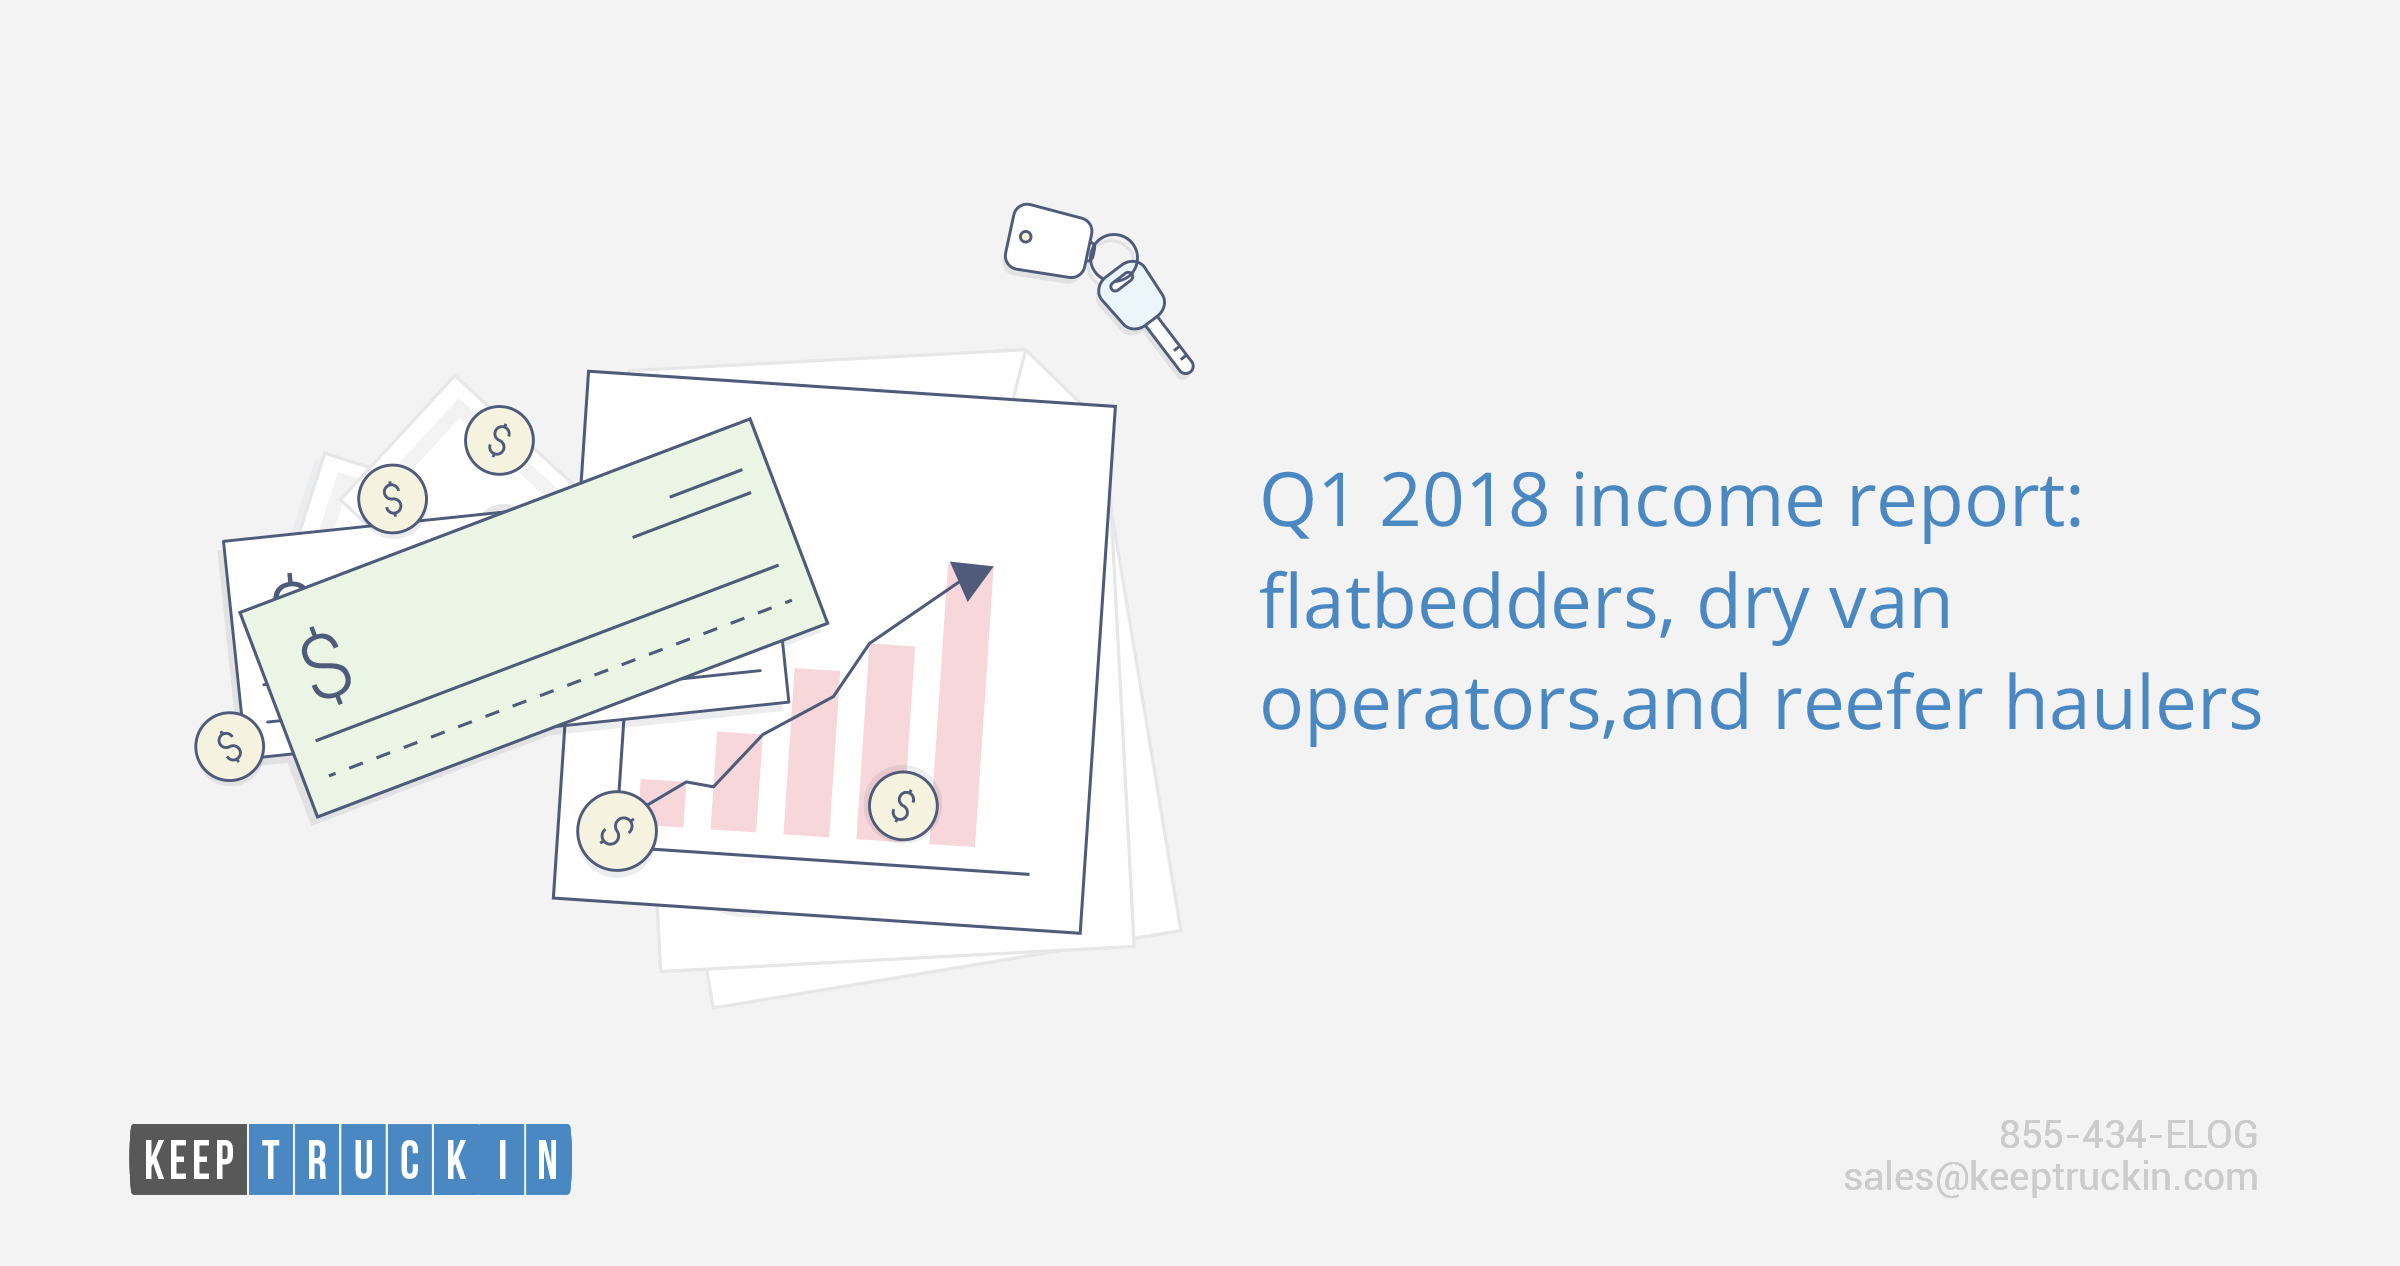 Q1 2018 income report: flatbedders, dry van operators, and reefer haulers